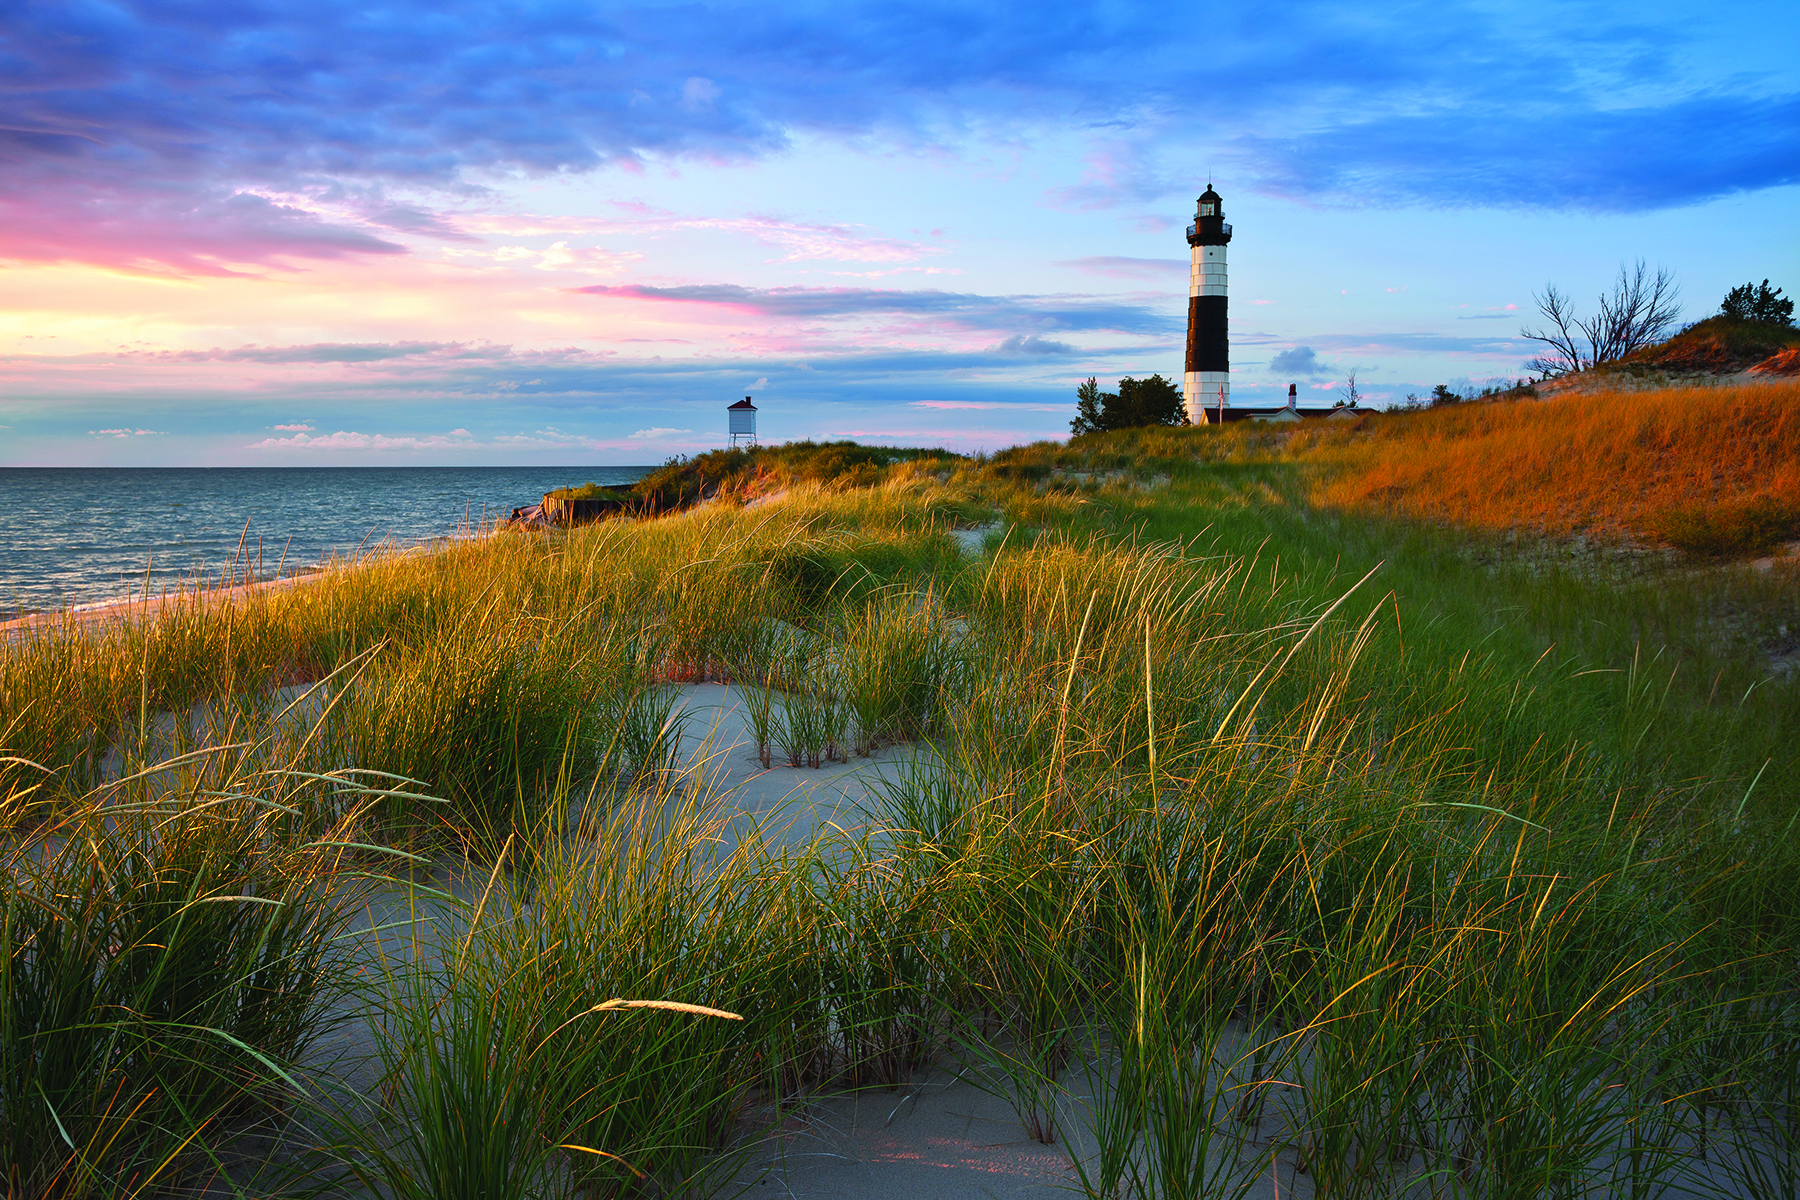 The Big Sable Point Lighthouse at sunset